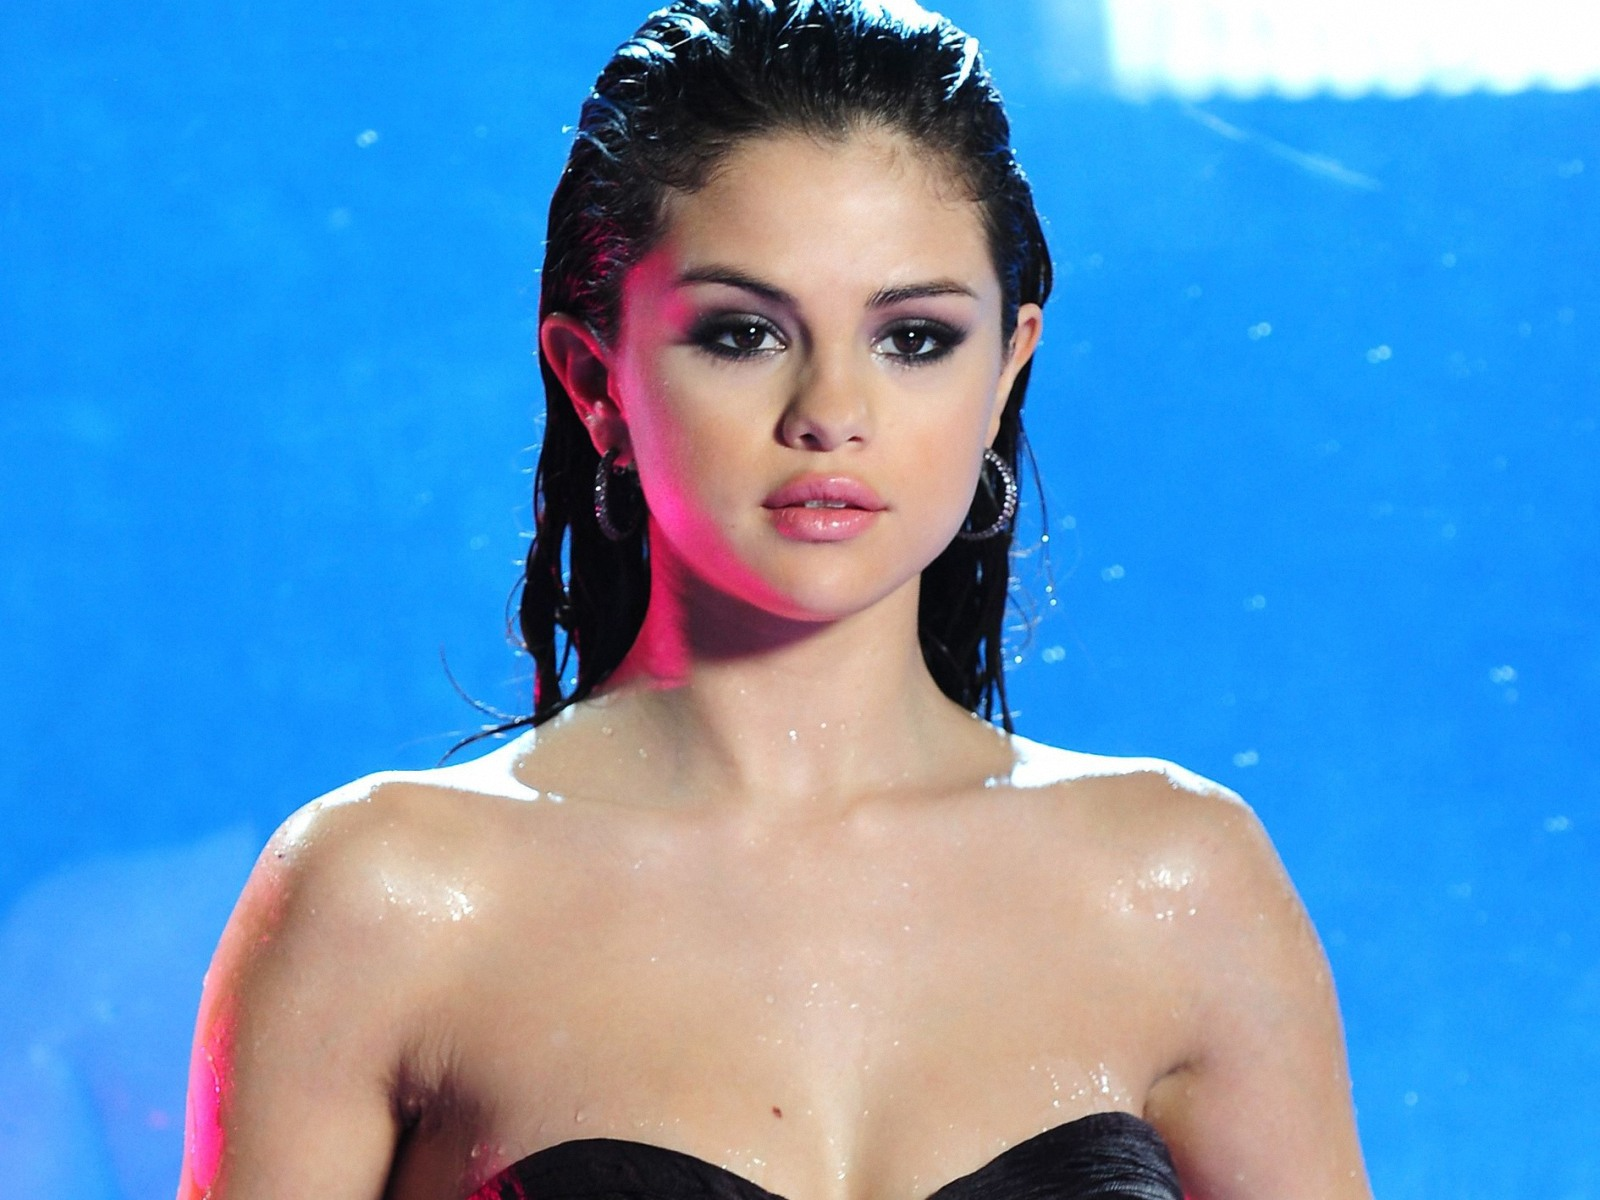 selena gomez soaking wet